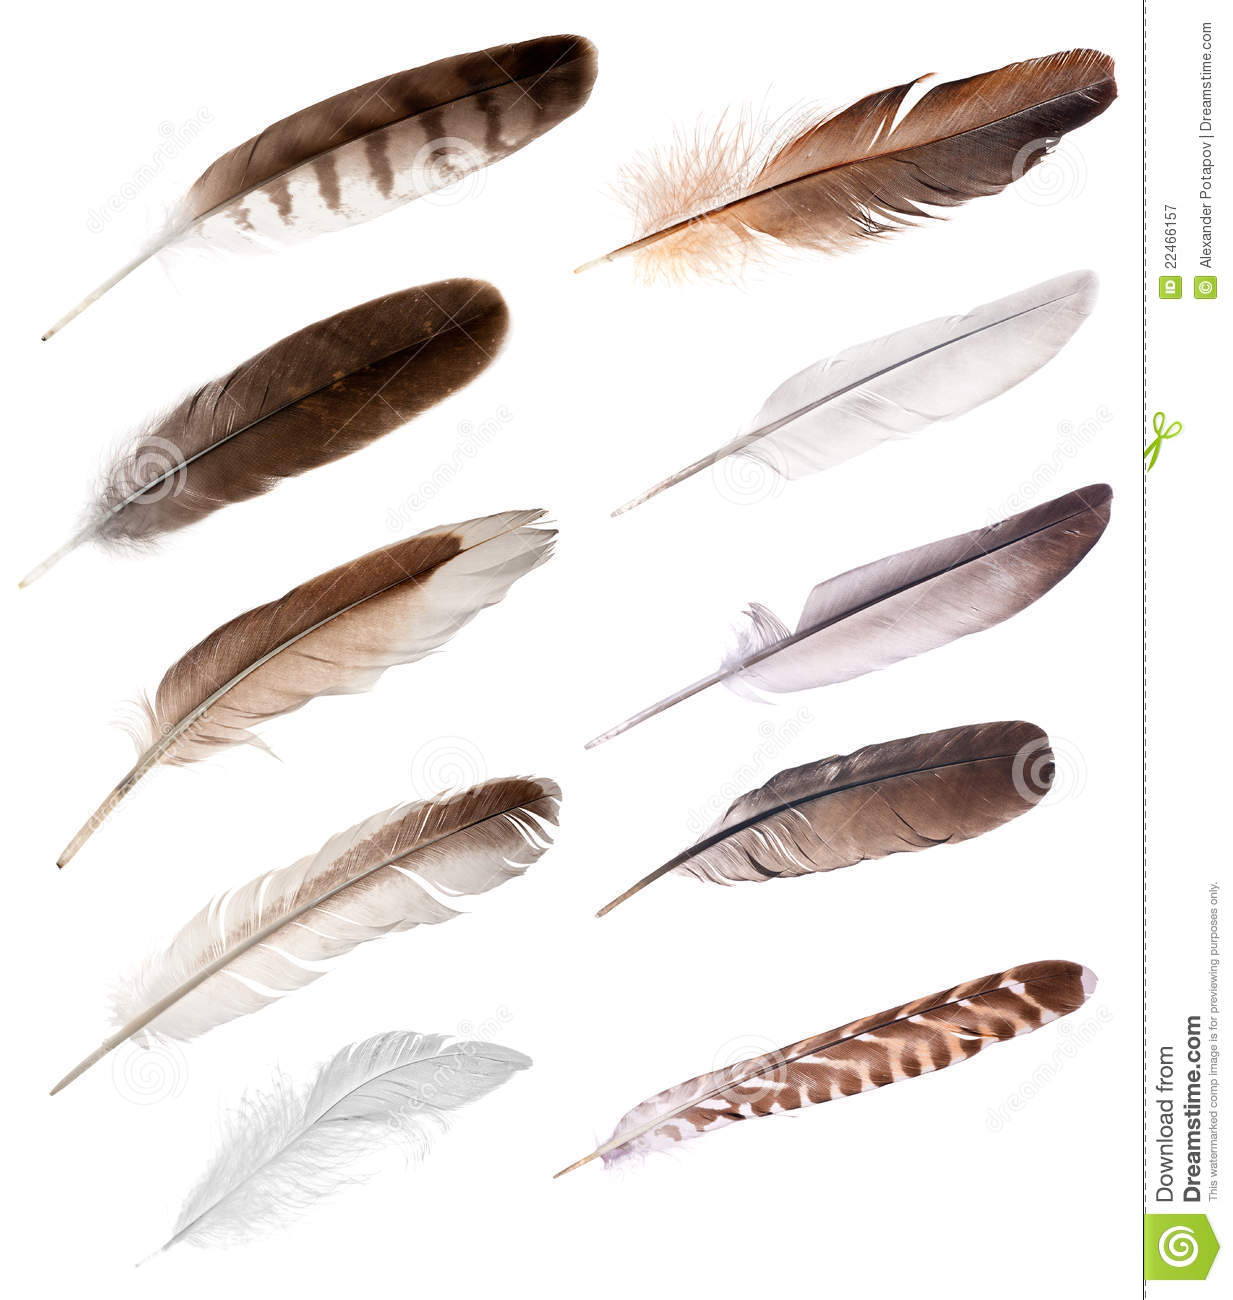 Different bird feathers - photo#36